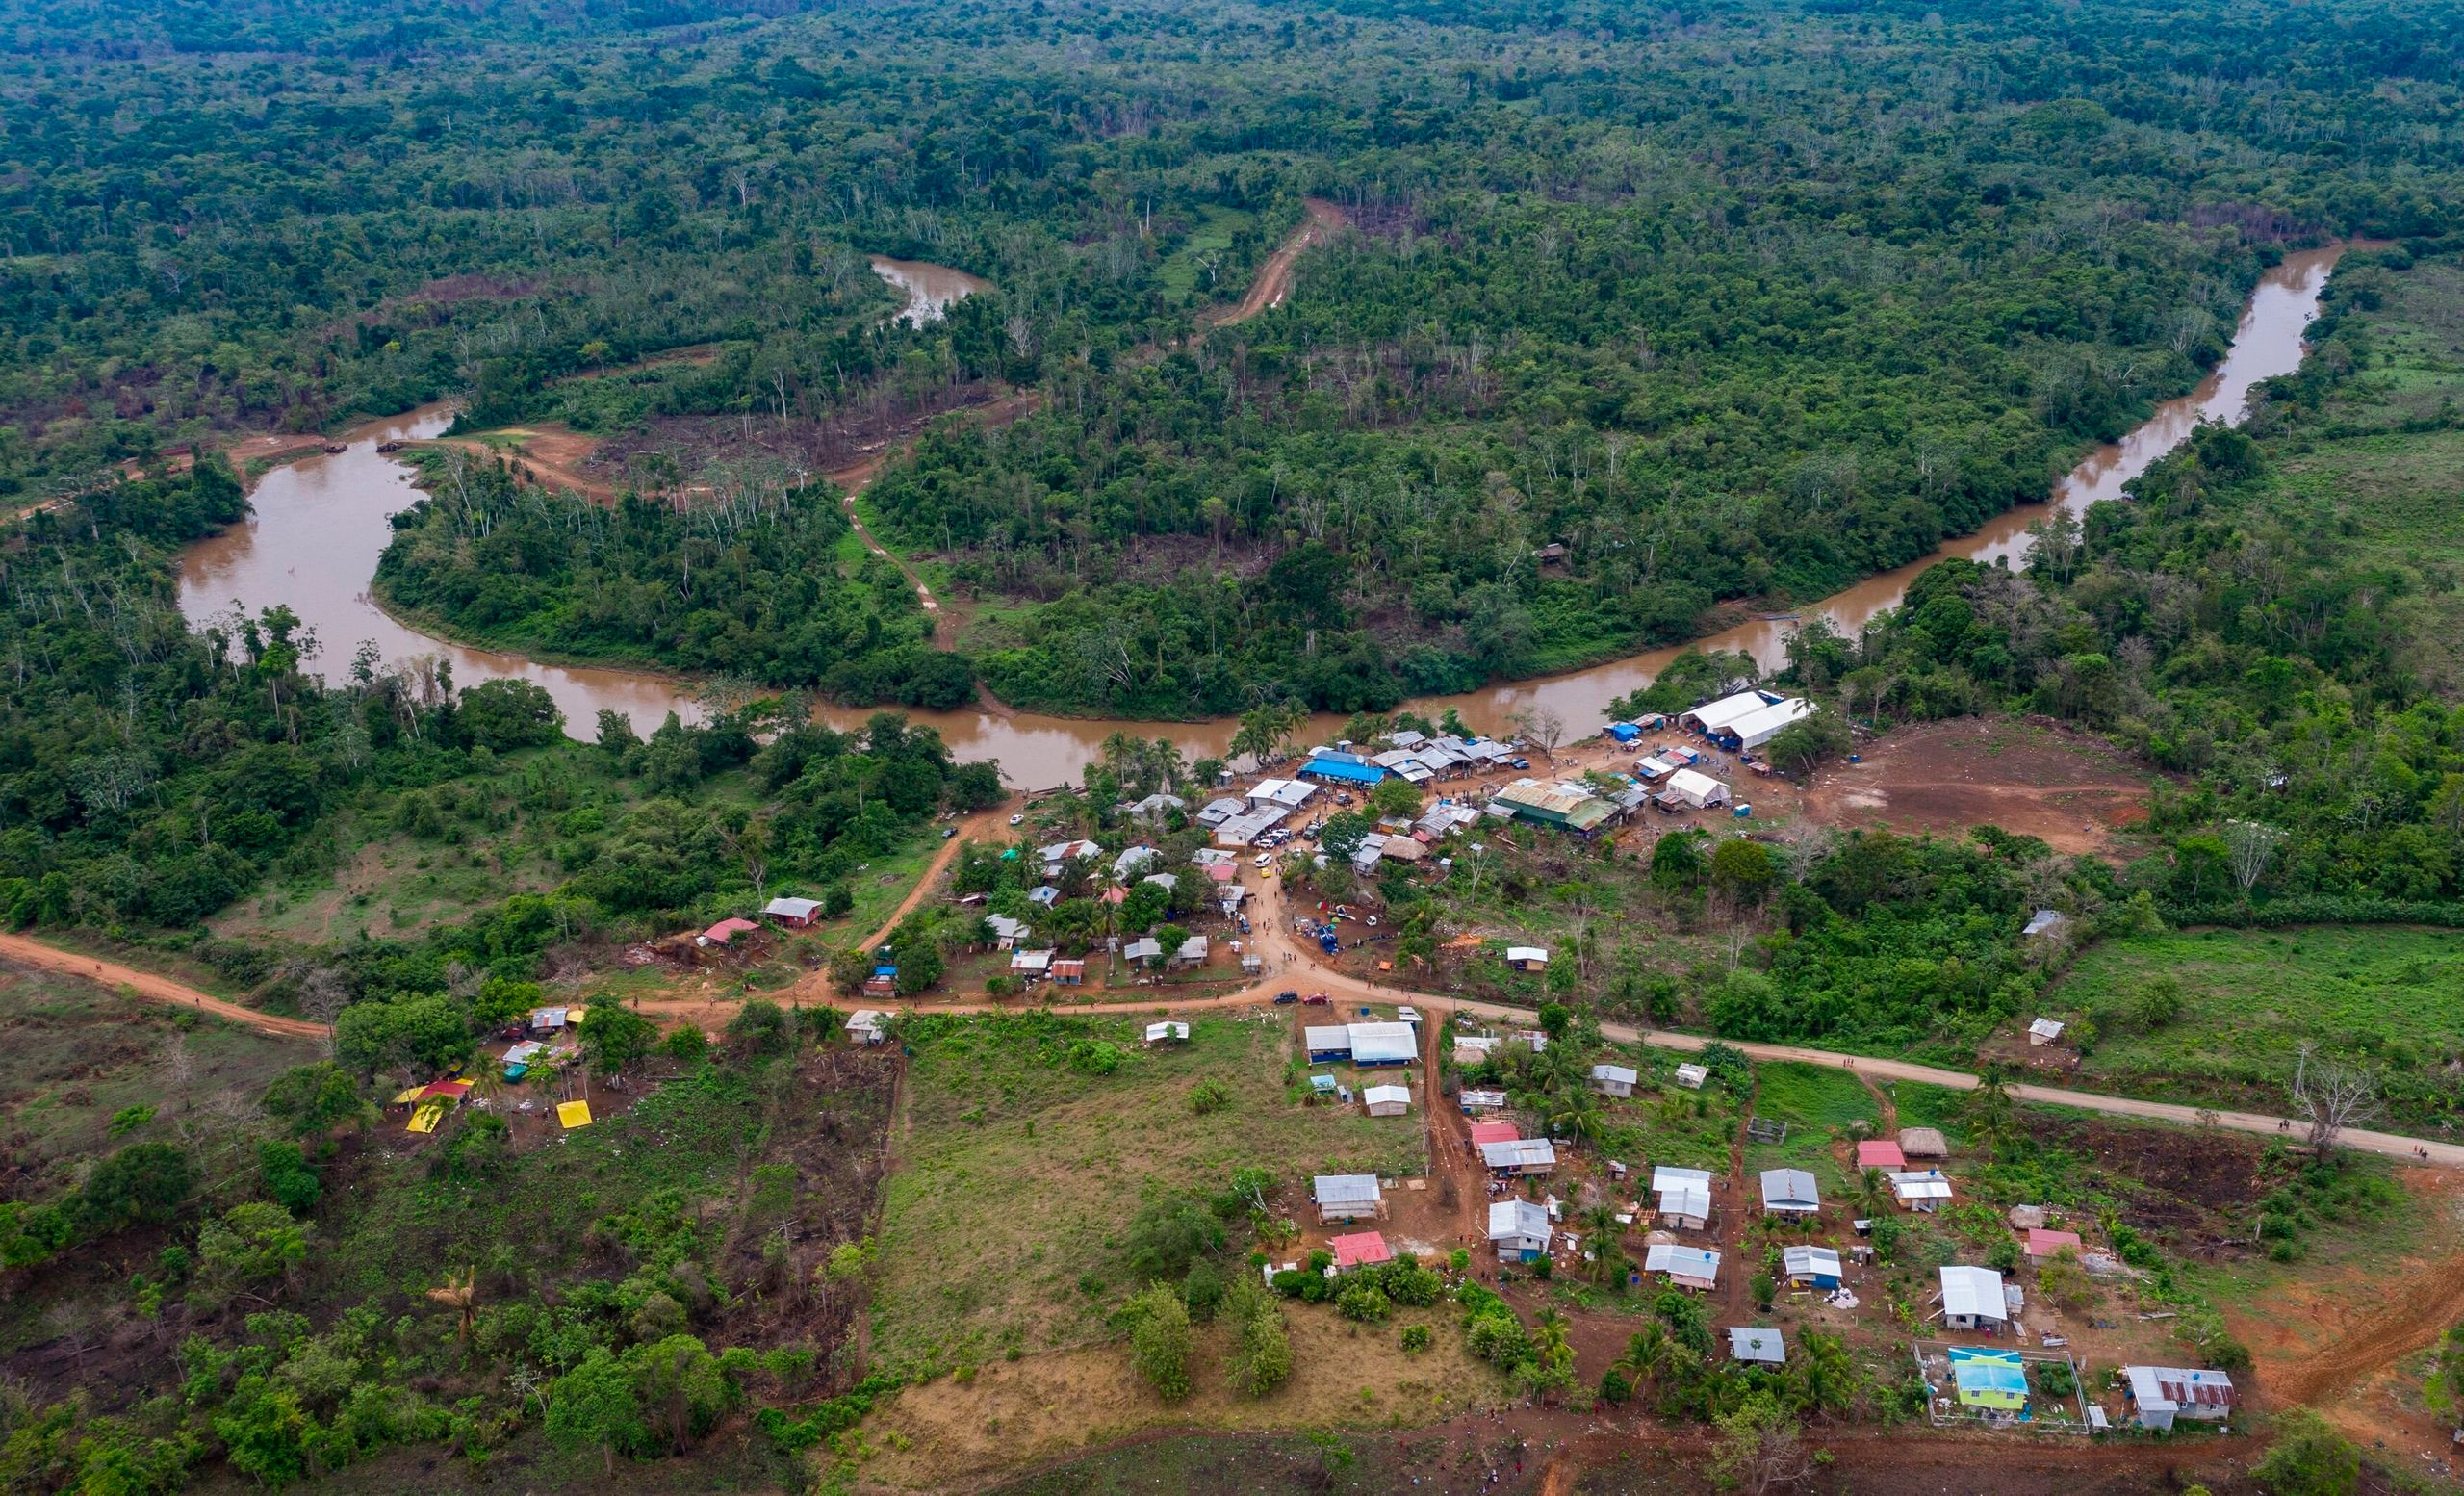 Aerial view of the La Penita indigenous village in Panama. Migrants cross the border between Colombia and Panama through the